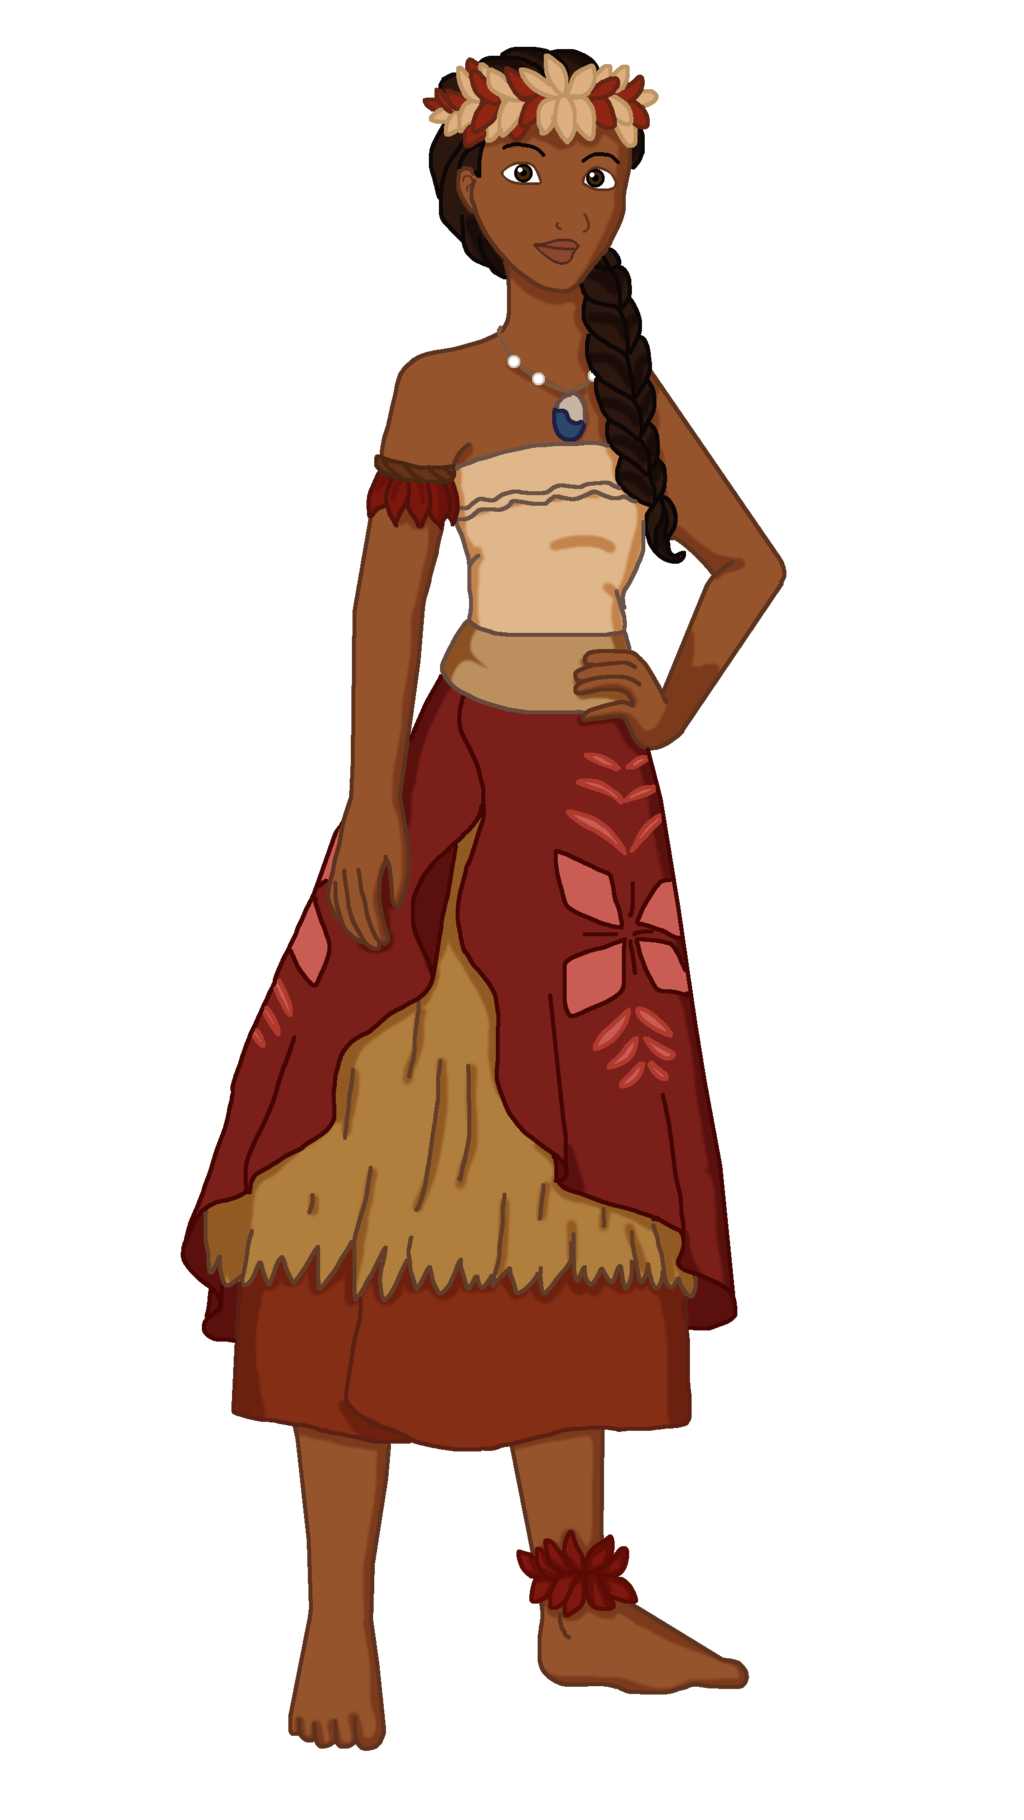 Drawing moana outfit. Disney ball series waialiki